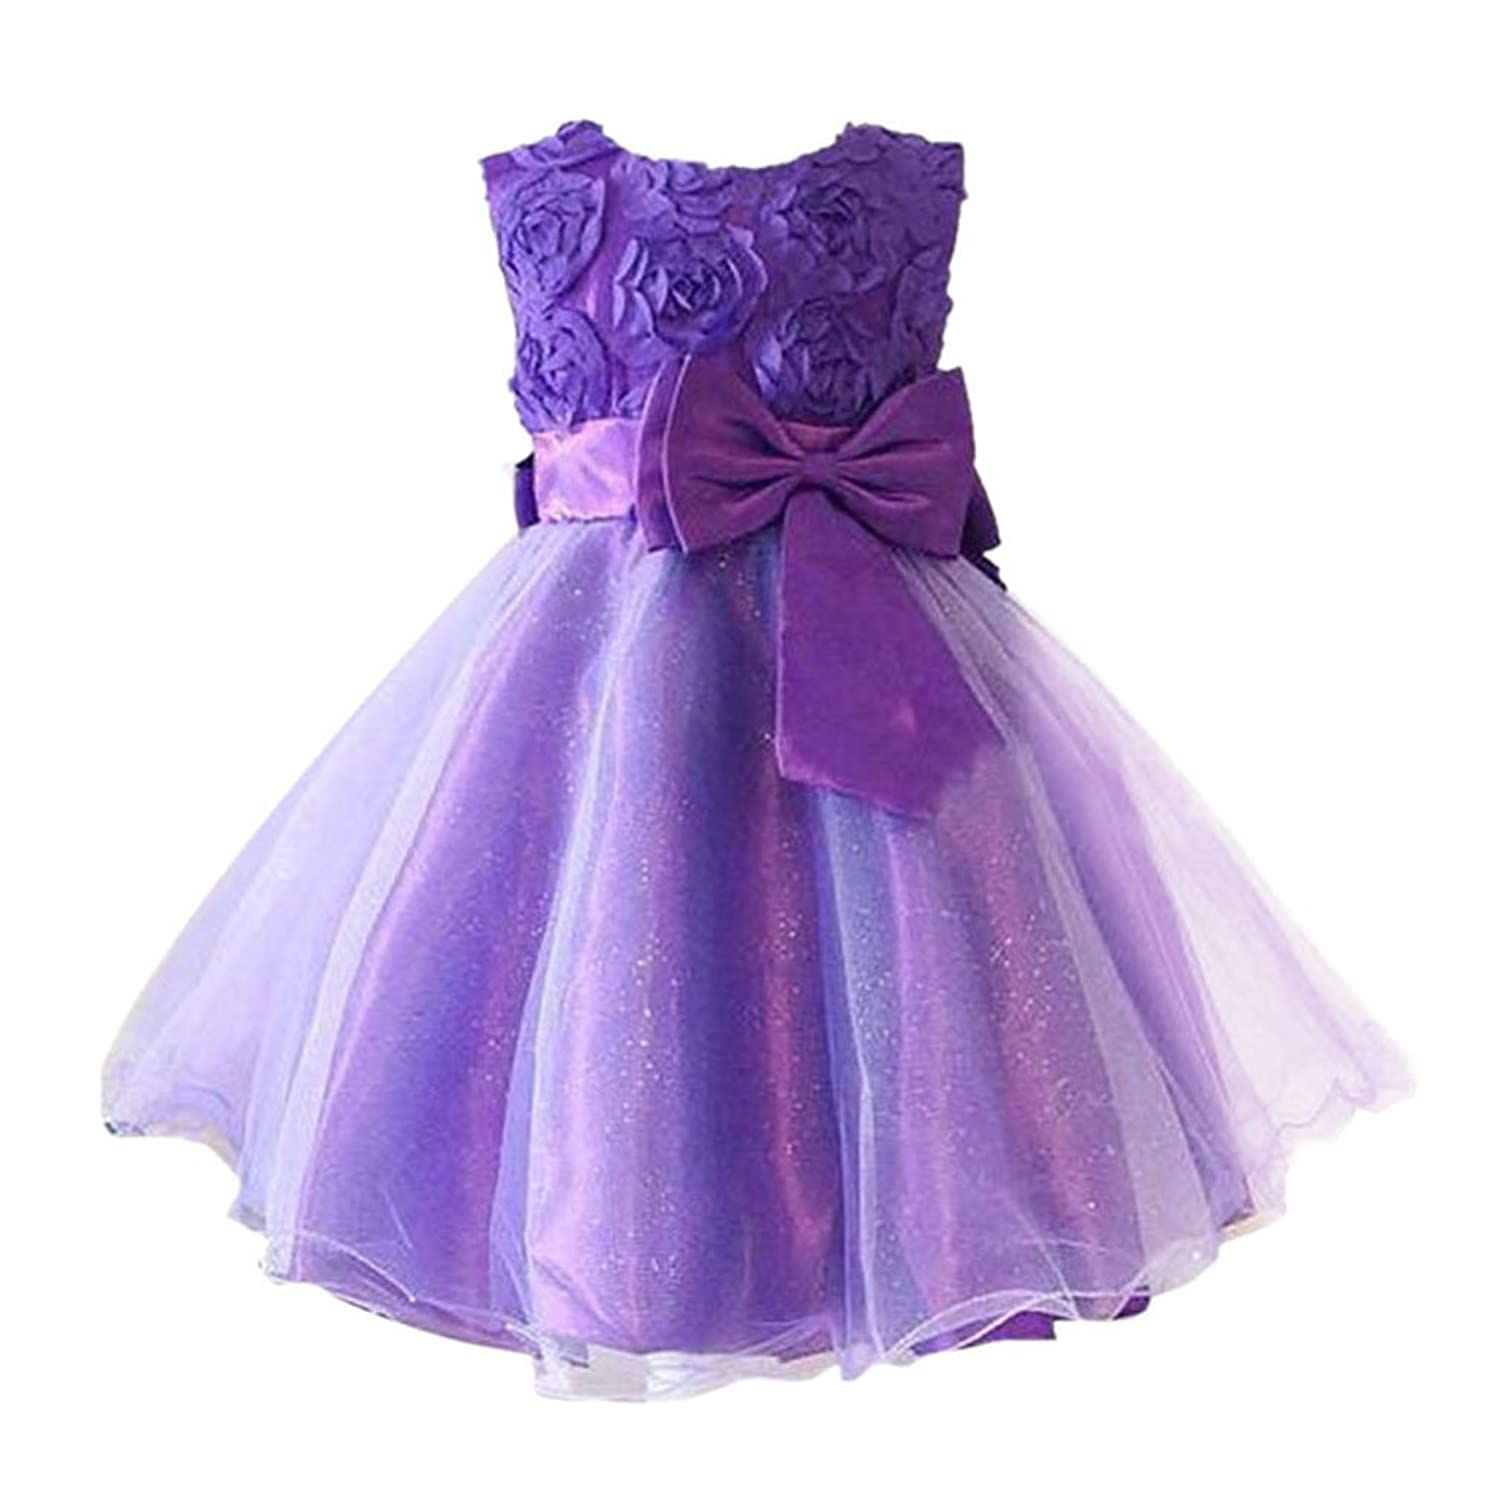 Froomer Flower Girl Princess Dress Toddler Wedding Party Tulle Dresses